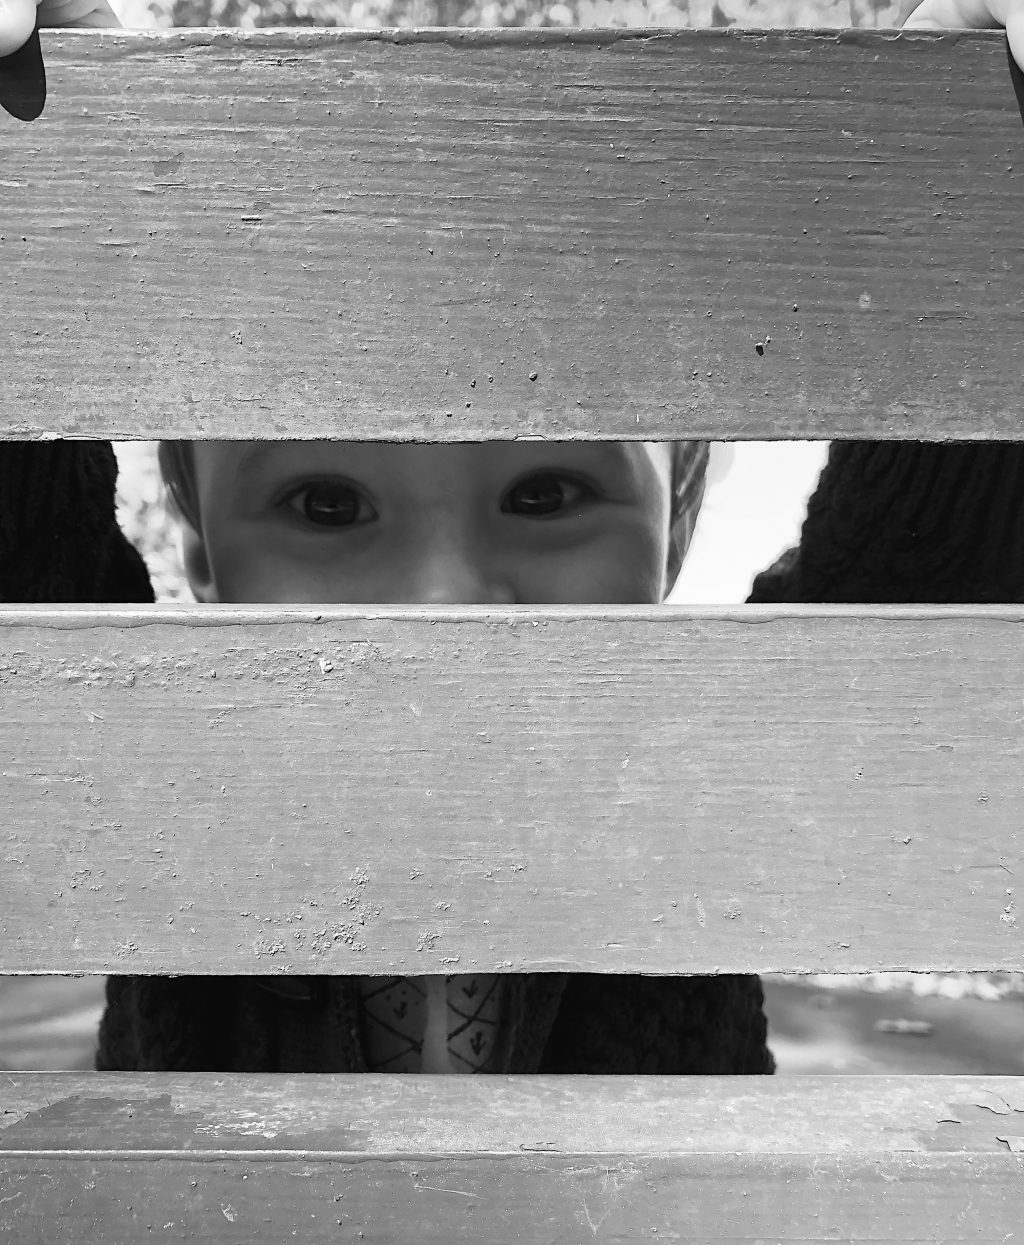 Black and whit portrait of a 10 month old baby peeping through park bench